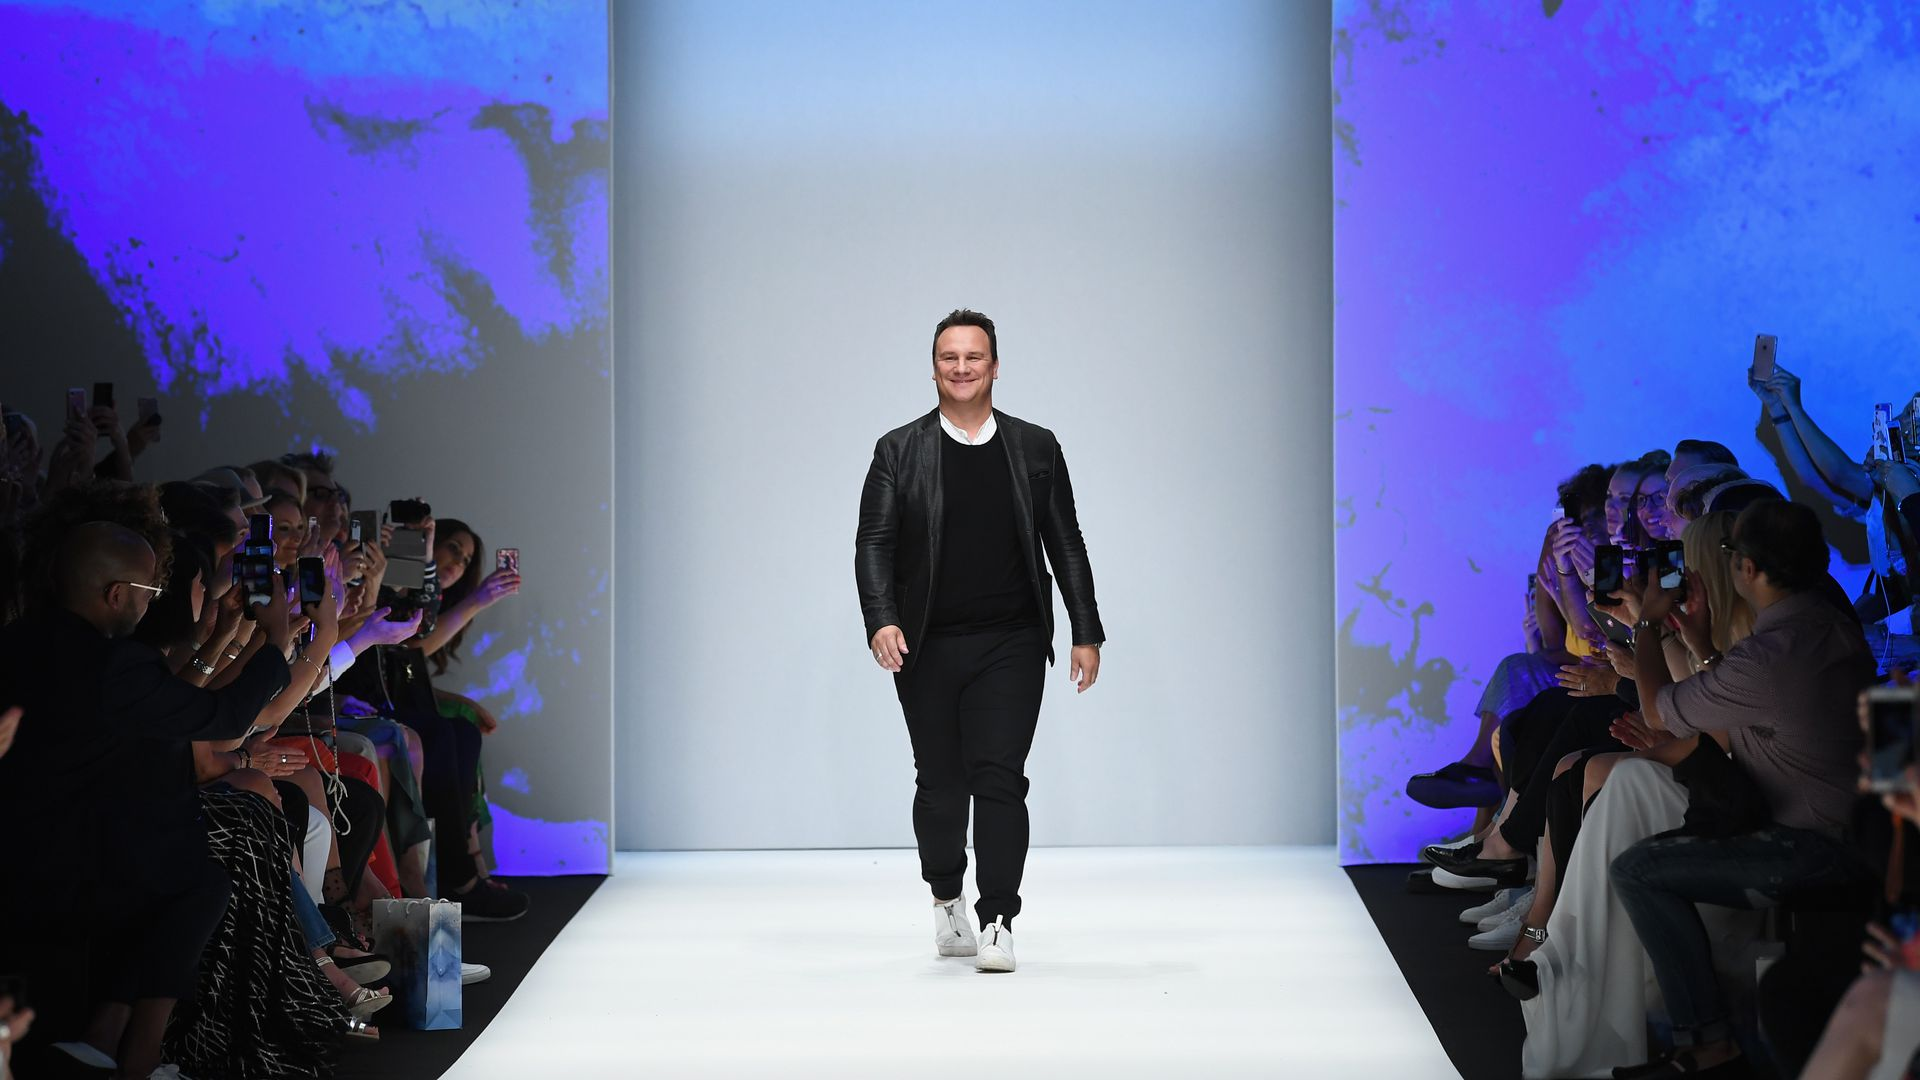 buy online 1a85f acee3 In the Kretschmer show: Model has its period on the catwalk